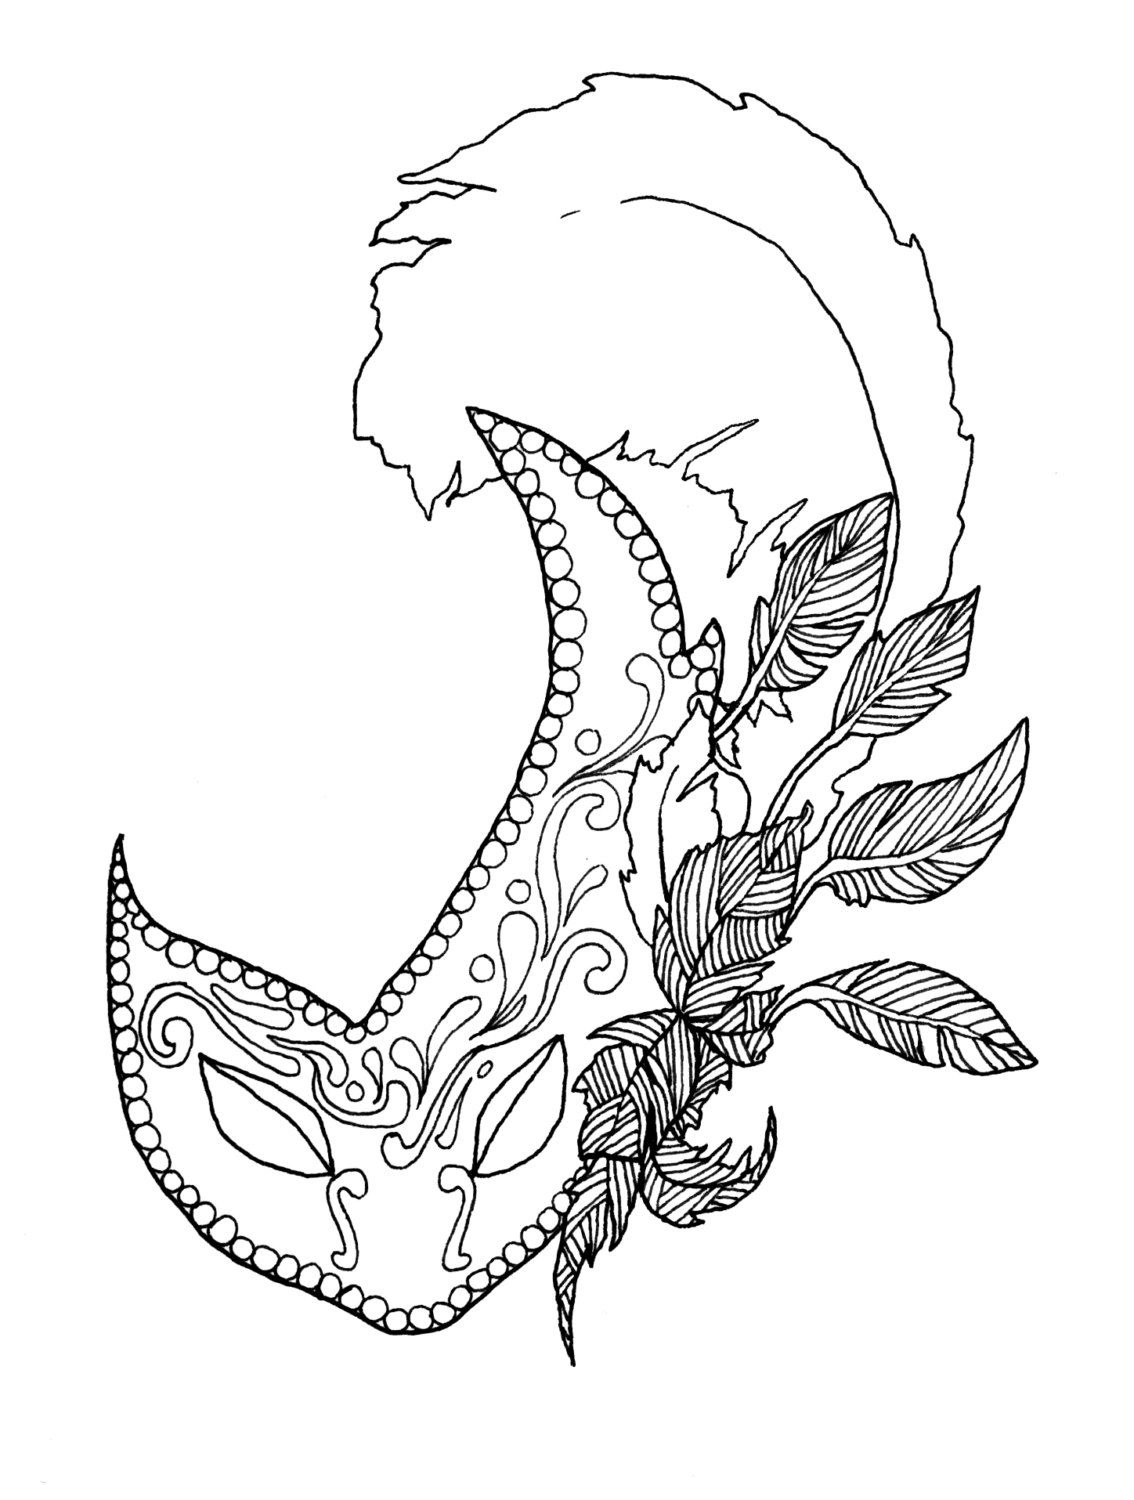 Free coloring pages for mardi gras - Mardi Gras Adult Coloring Book Digital Download Downloadable Adult Coloring